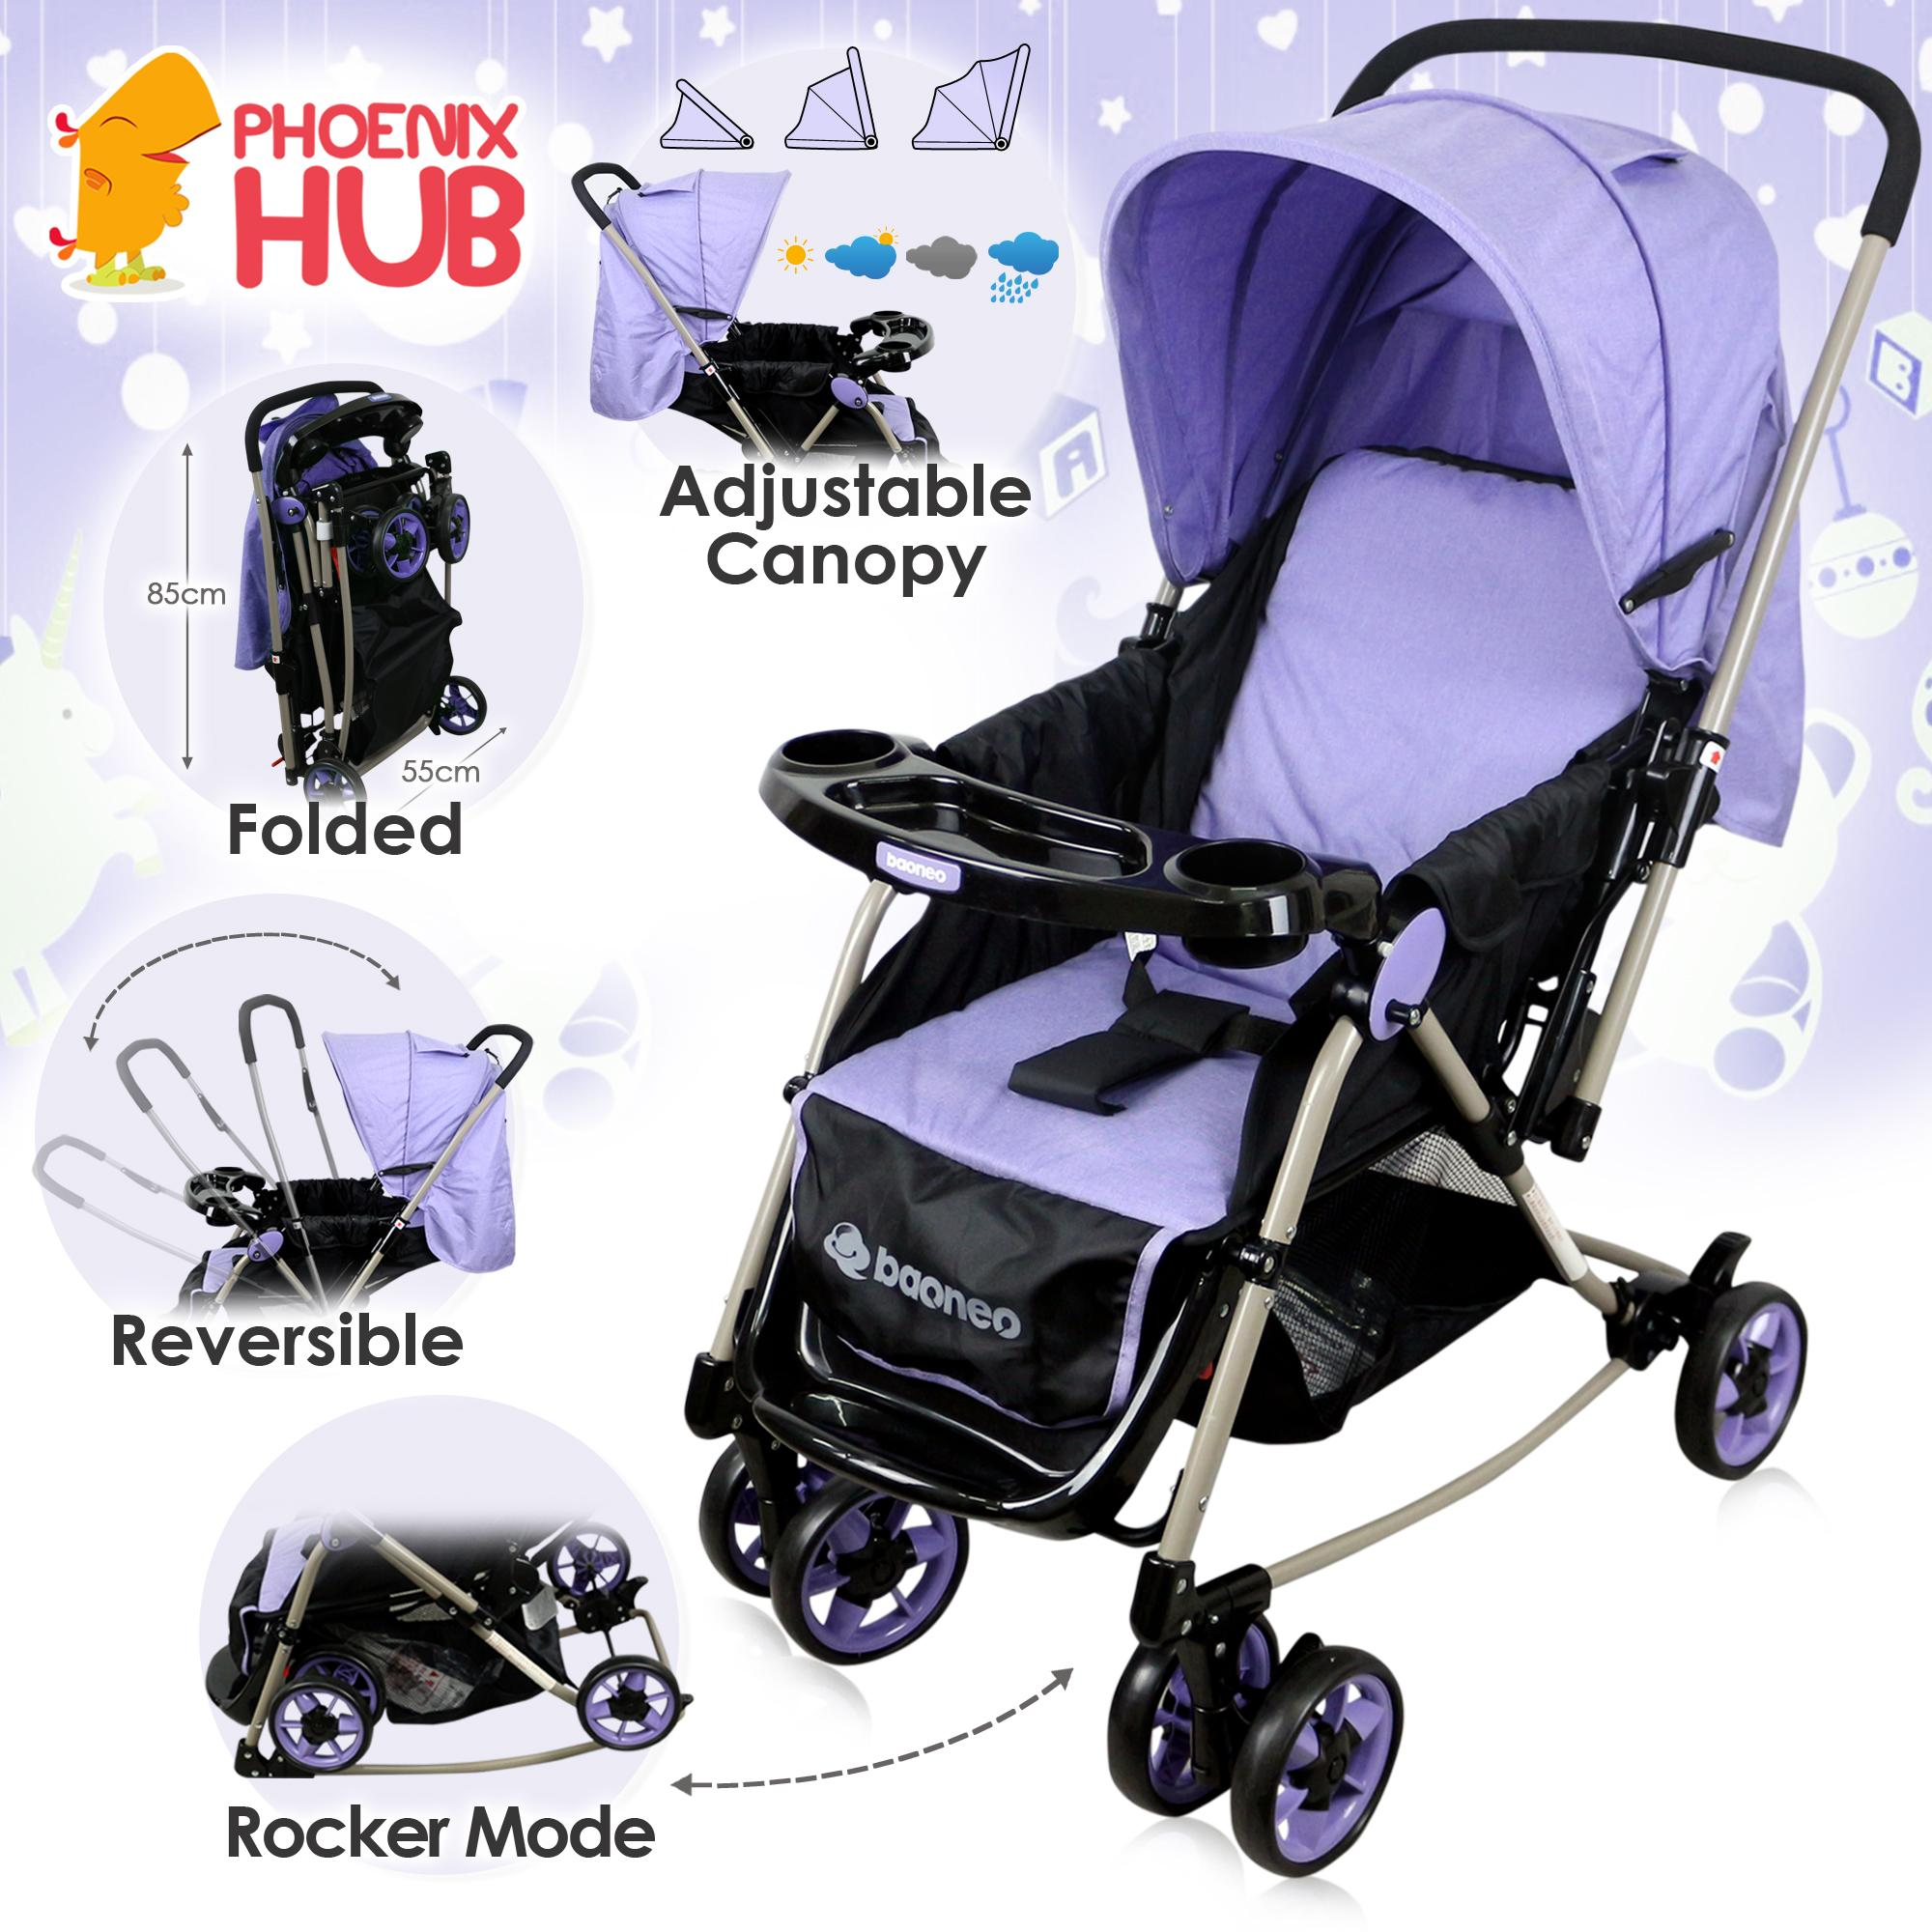 Phoenix Hub S32 Baoneo Stroller Rocker Pocket Stroller Pockit Pushchair Food Tray High Quality Portable Stroller Multi Function Baby Travel System By Phoenix Hub.